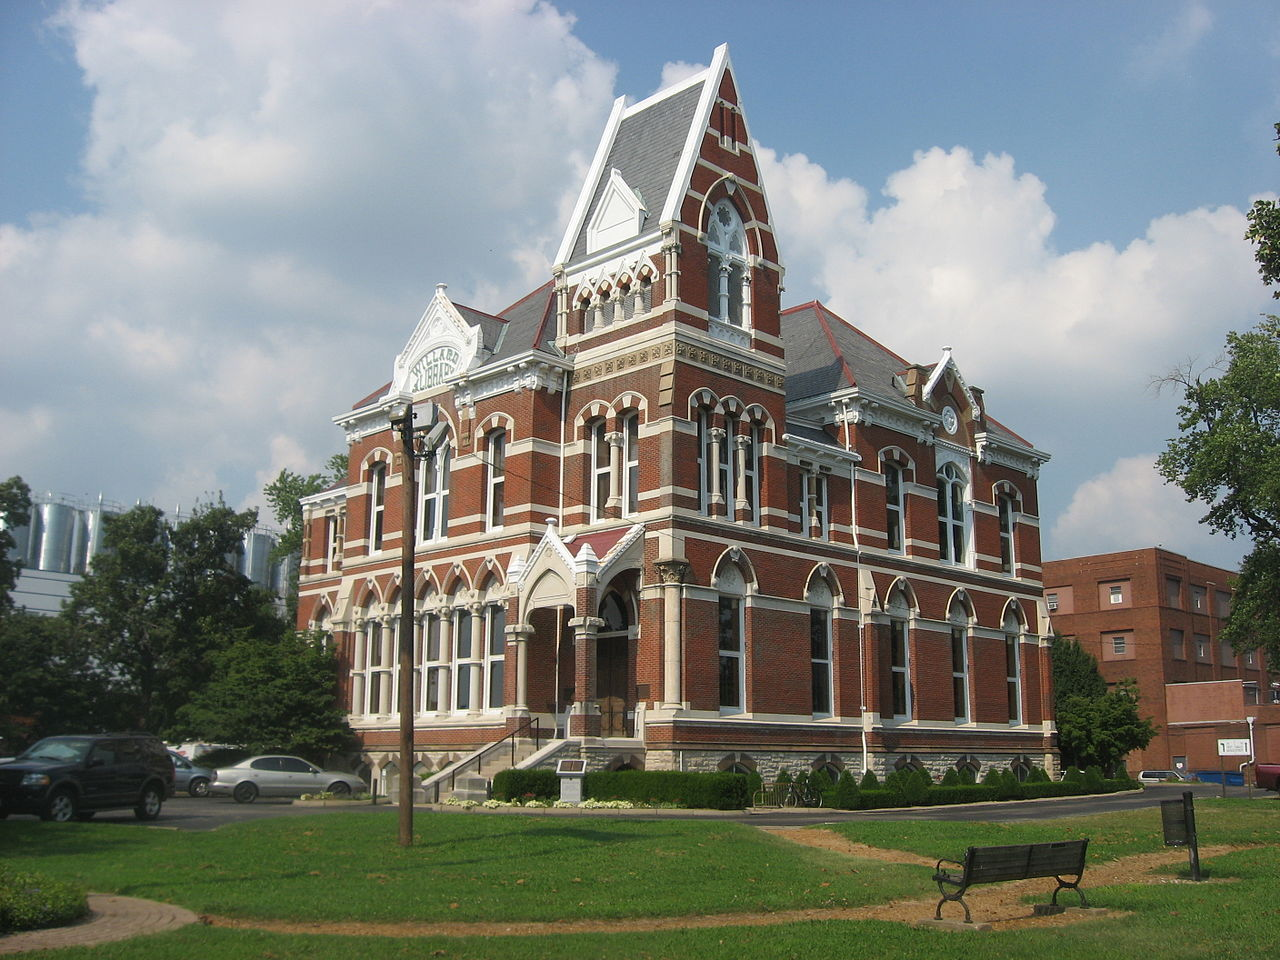 Willard Library was built in 1885 and is one of Evansville's more notable landmarks.